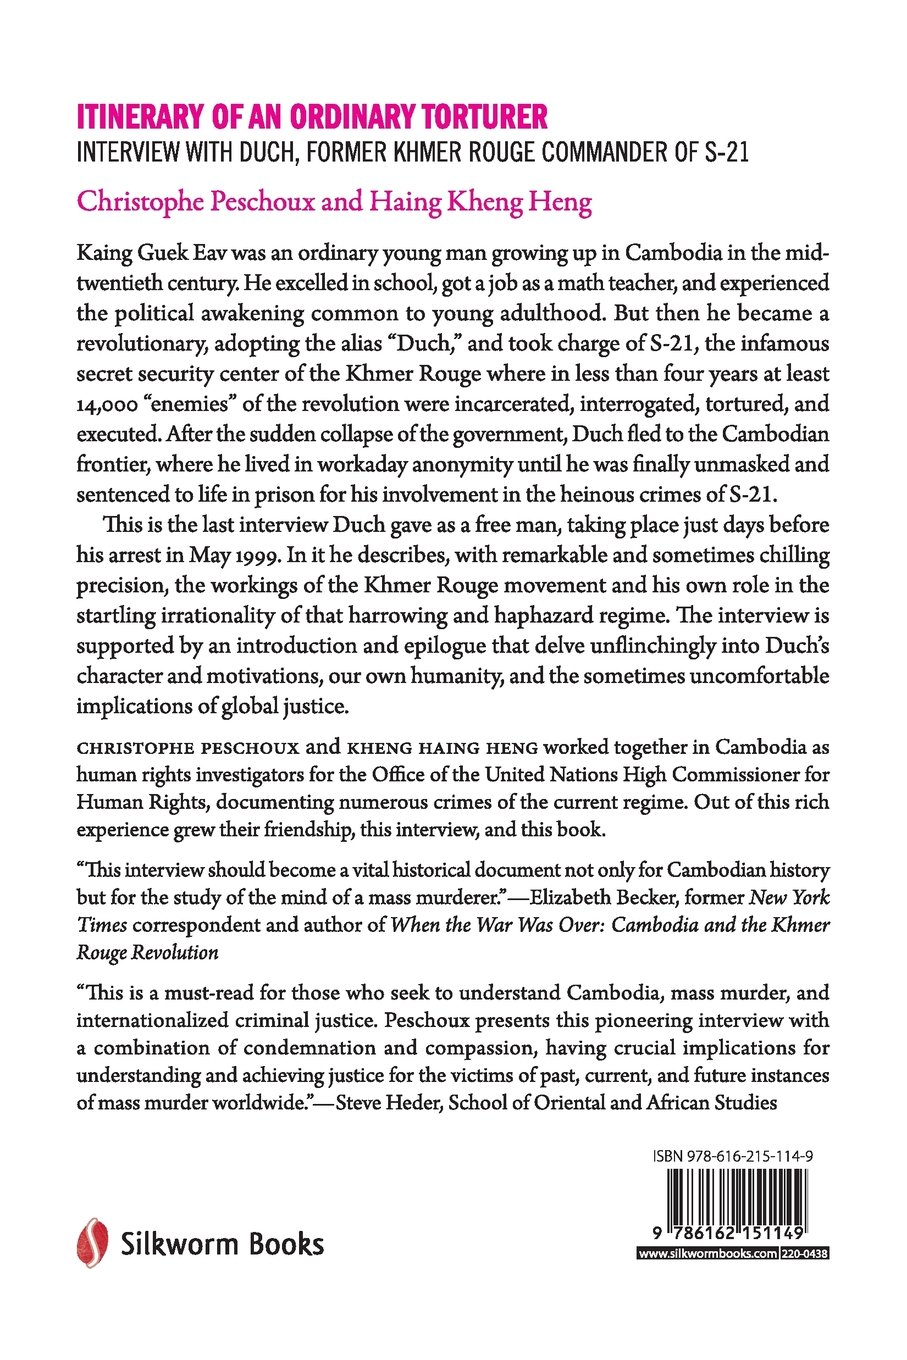 Itinerary of an ordinary torturer interview with duch former itinerary of an ordinary torturer interview with duch former khmer rouge commander of s 21 christophe peschoux haing kheng heng 9786162151149 sciox Images